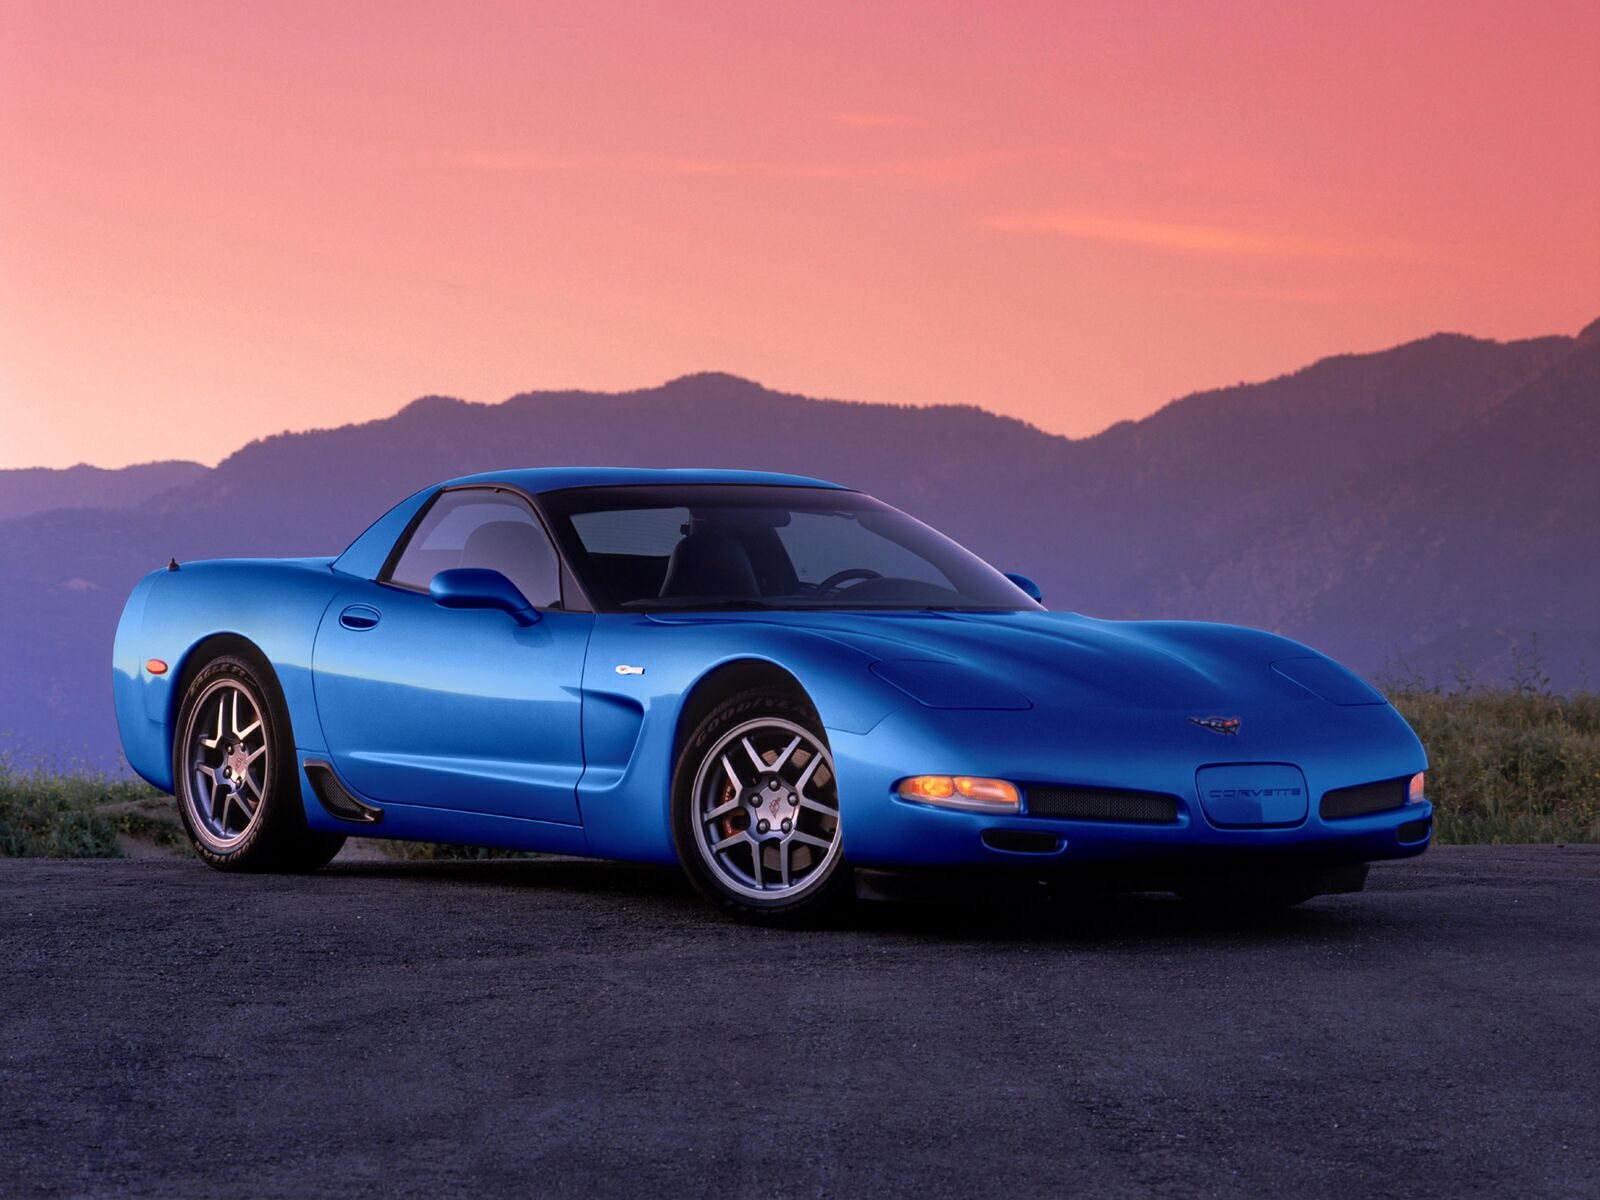 chevrolet corvette c5 coupe 2003